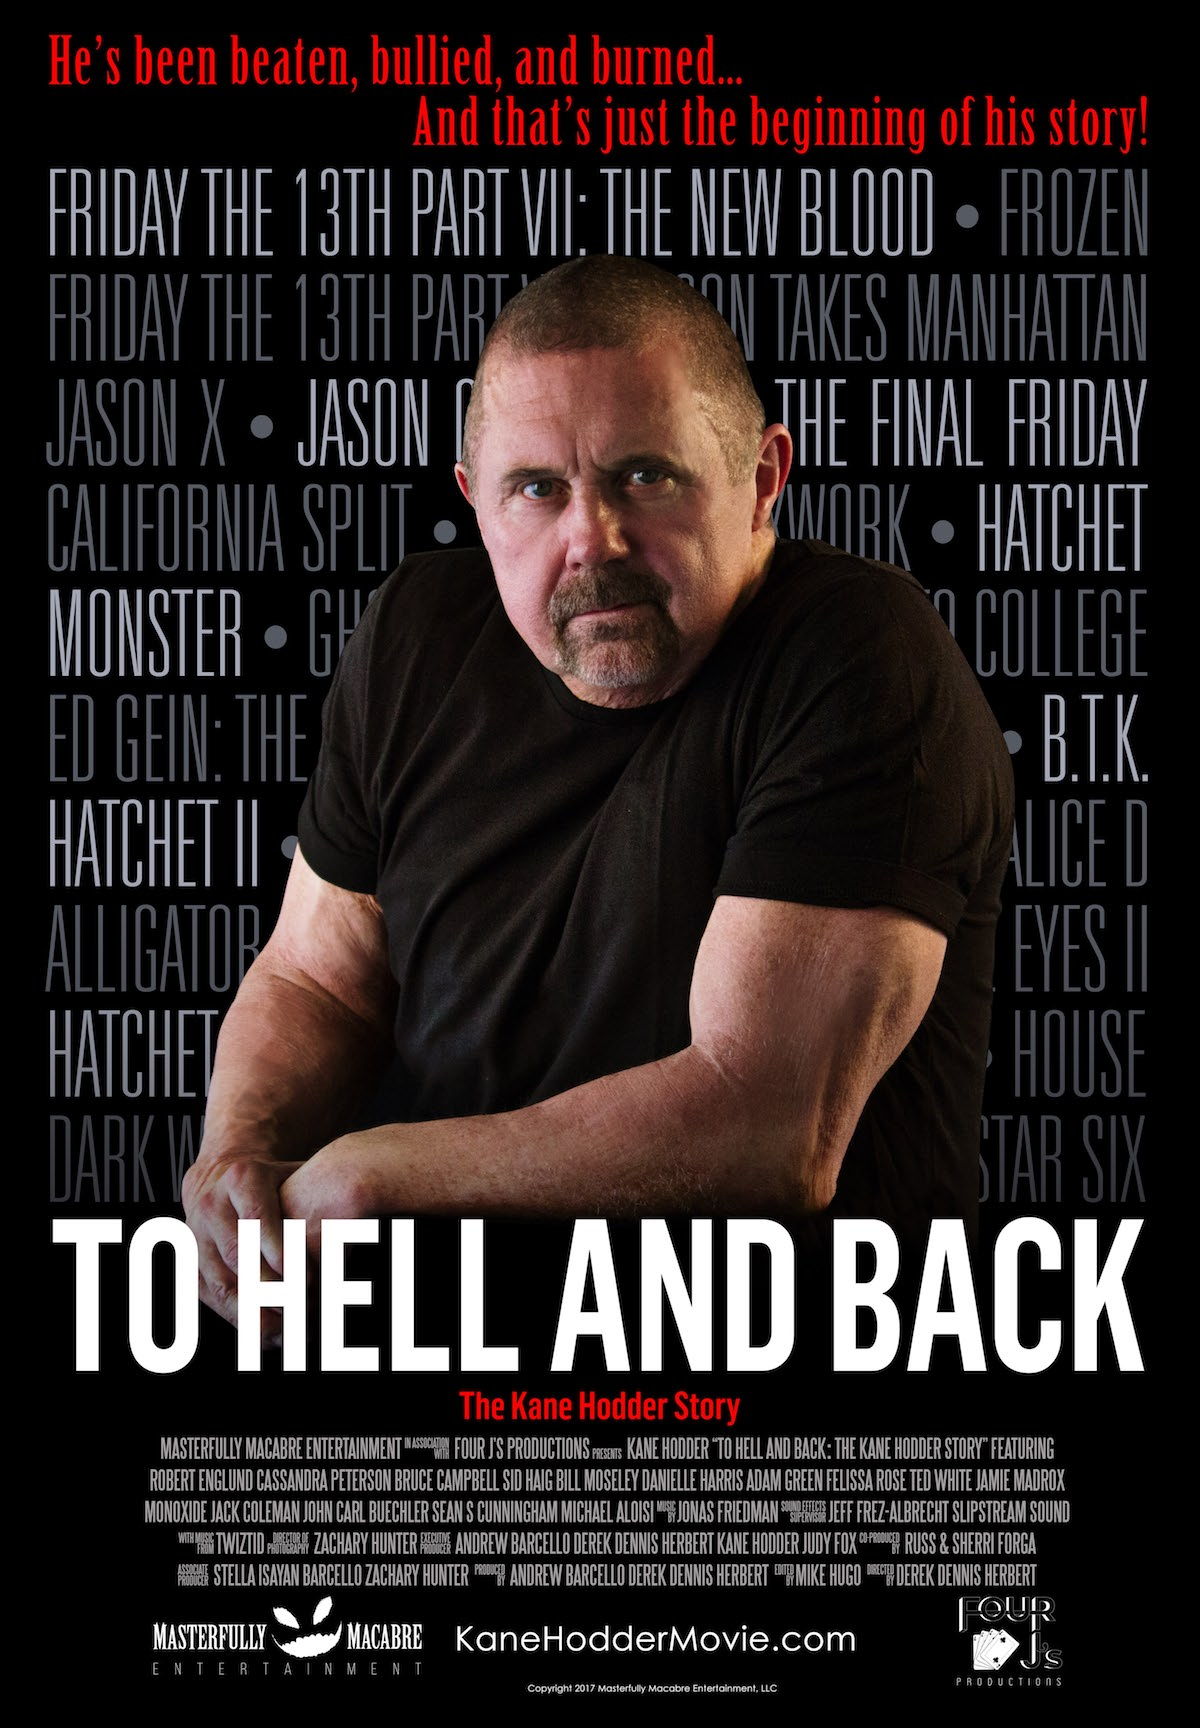 To Hell and Back Theatrical Poster - Exclusive Interview: Kane Hodder Talks Biopic To Hell and Back: The Kane Hodder Story at Screamfest